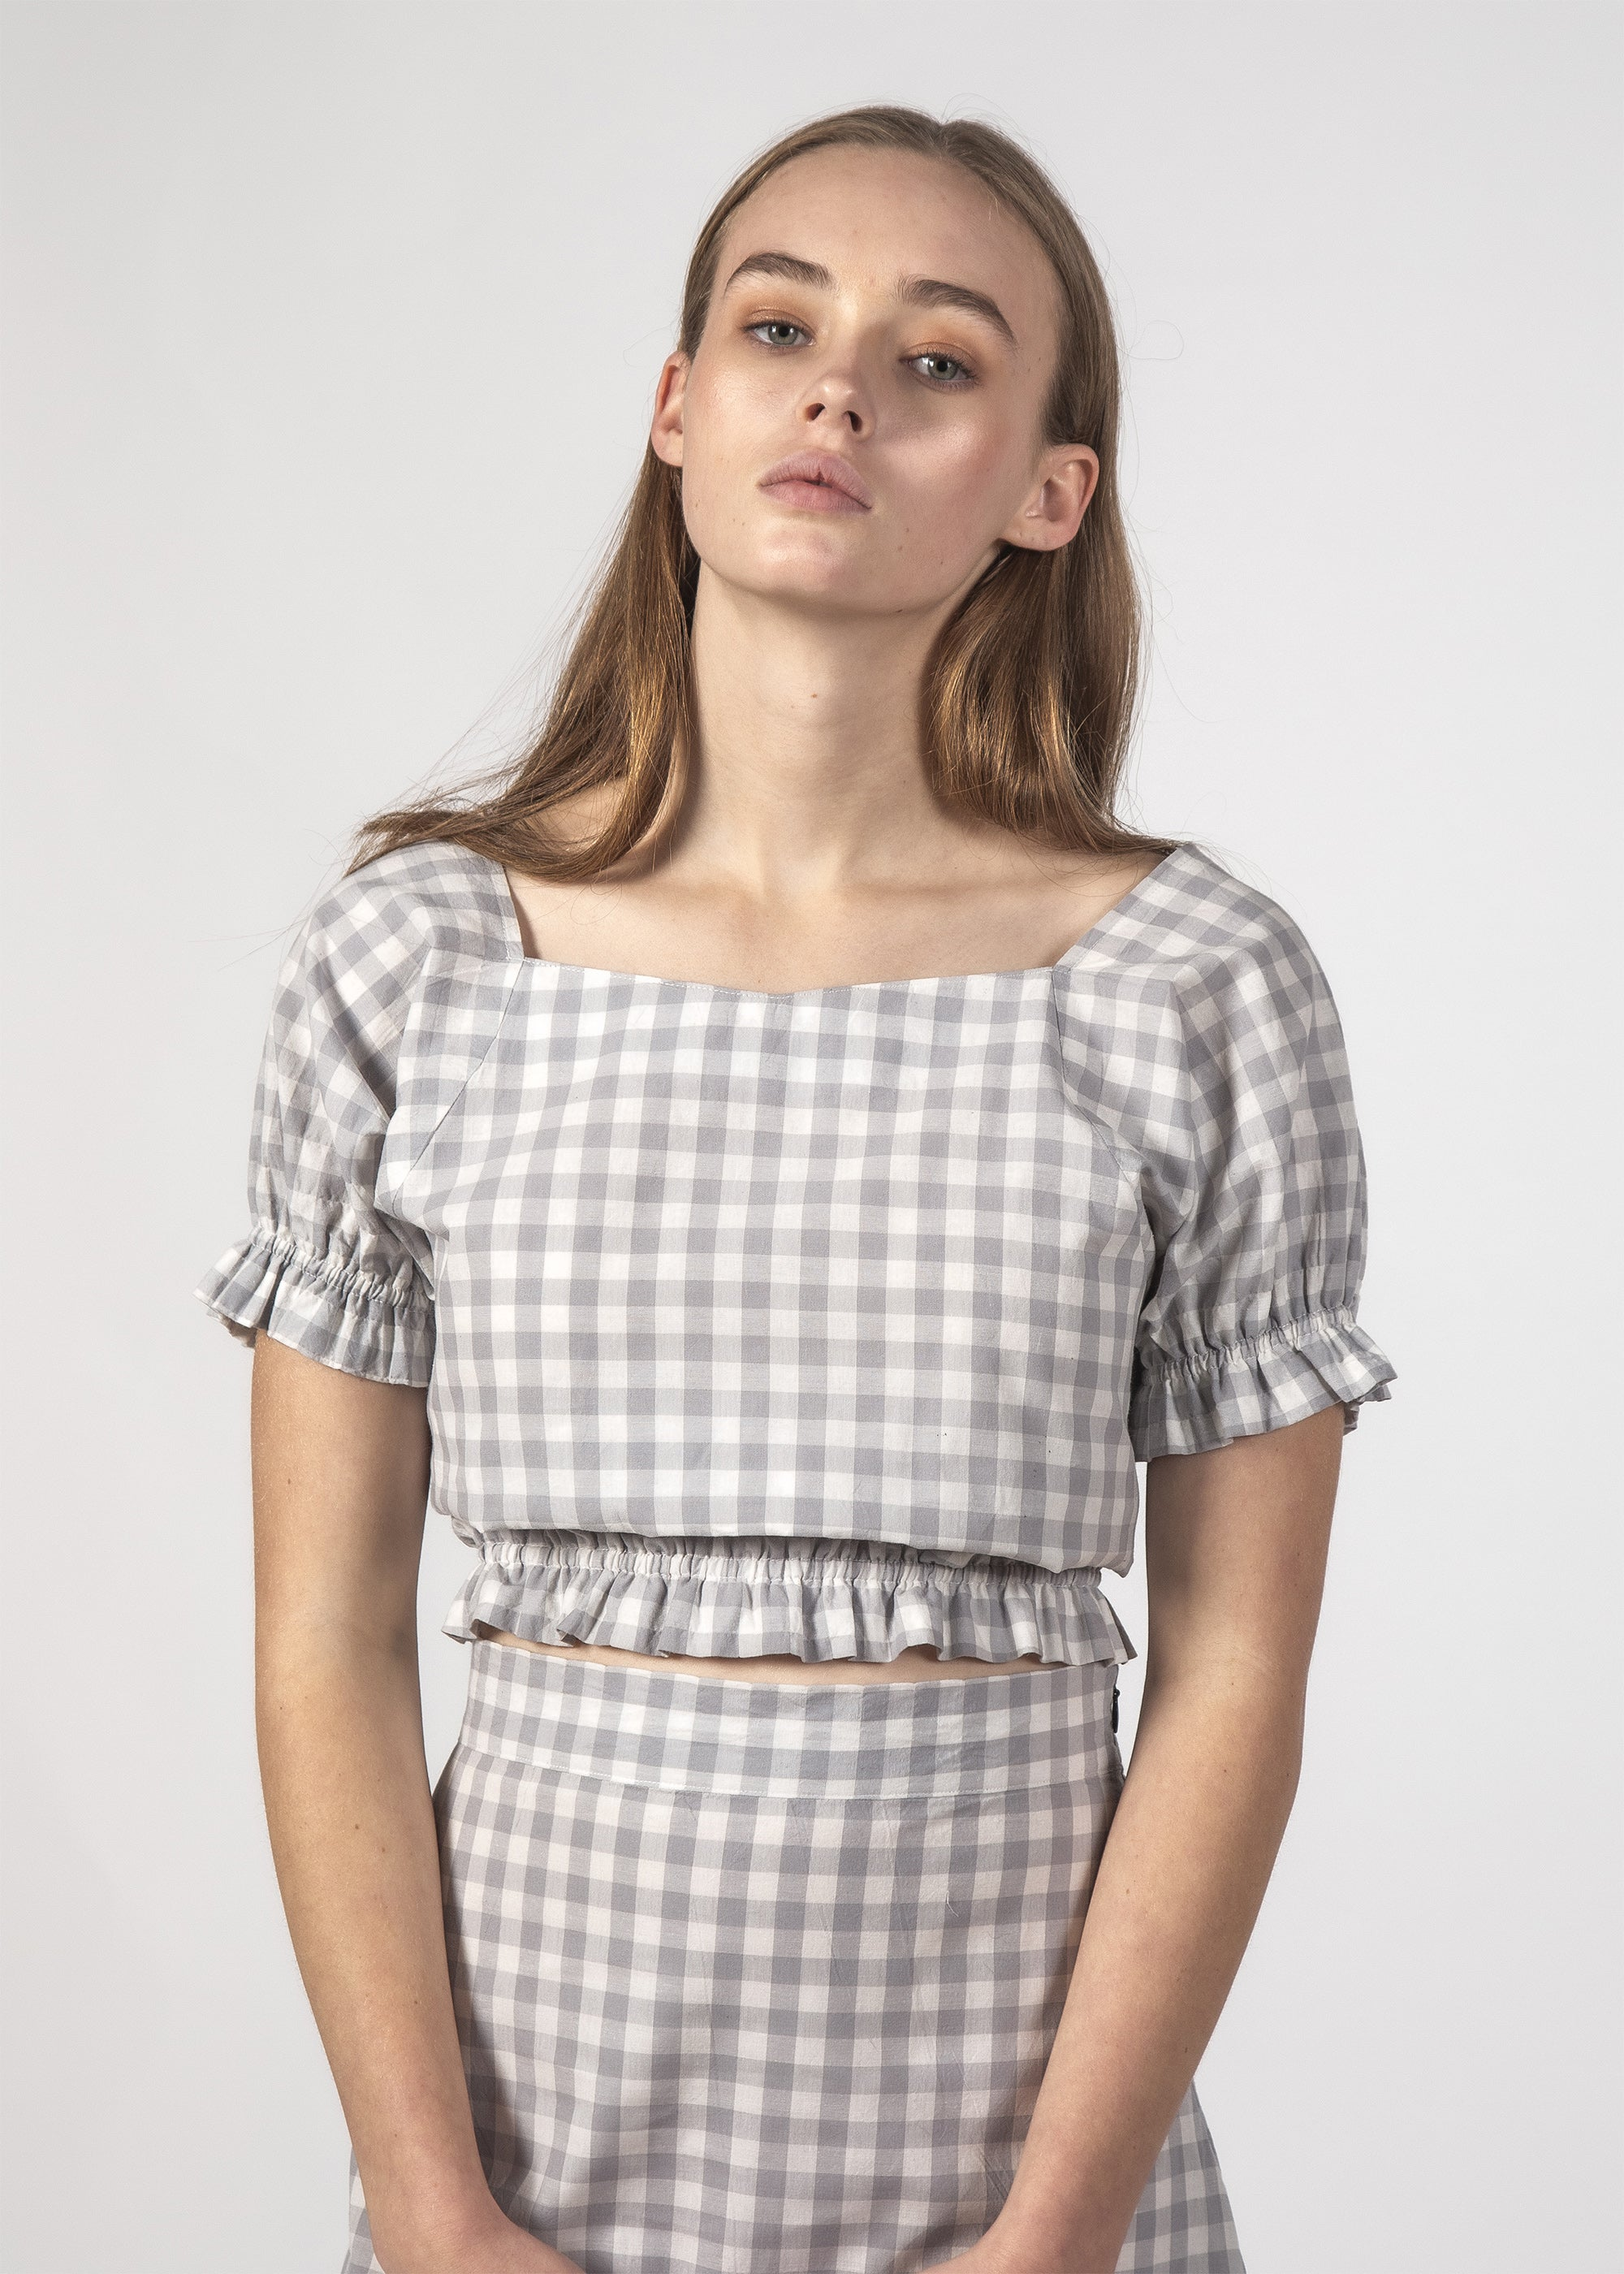 NICO TOP SKY GINGHAM